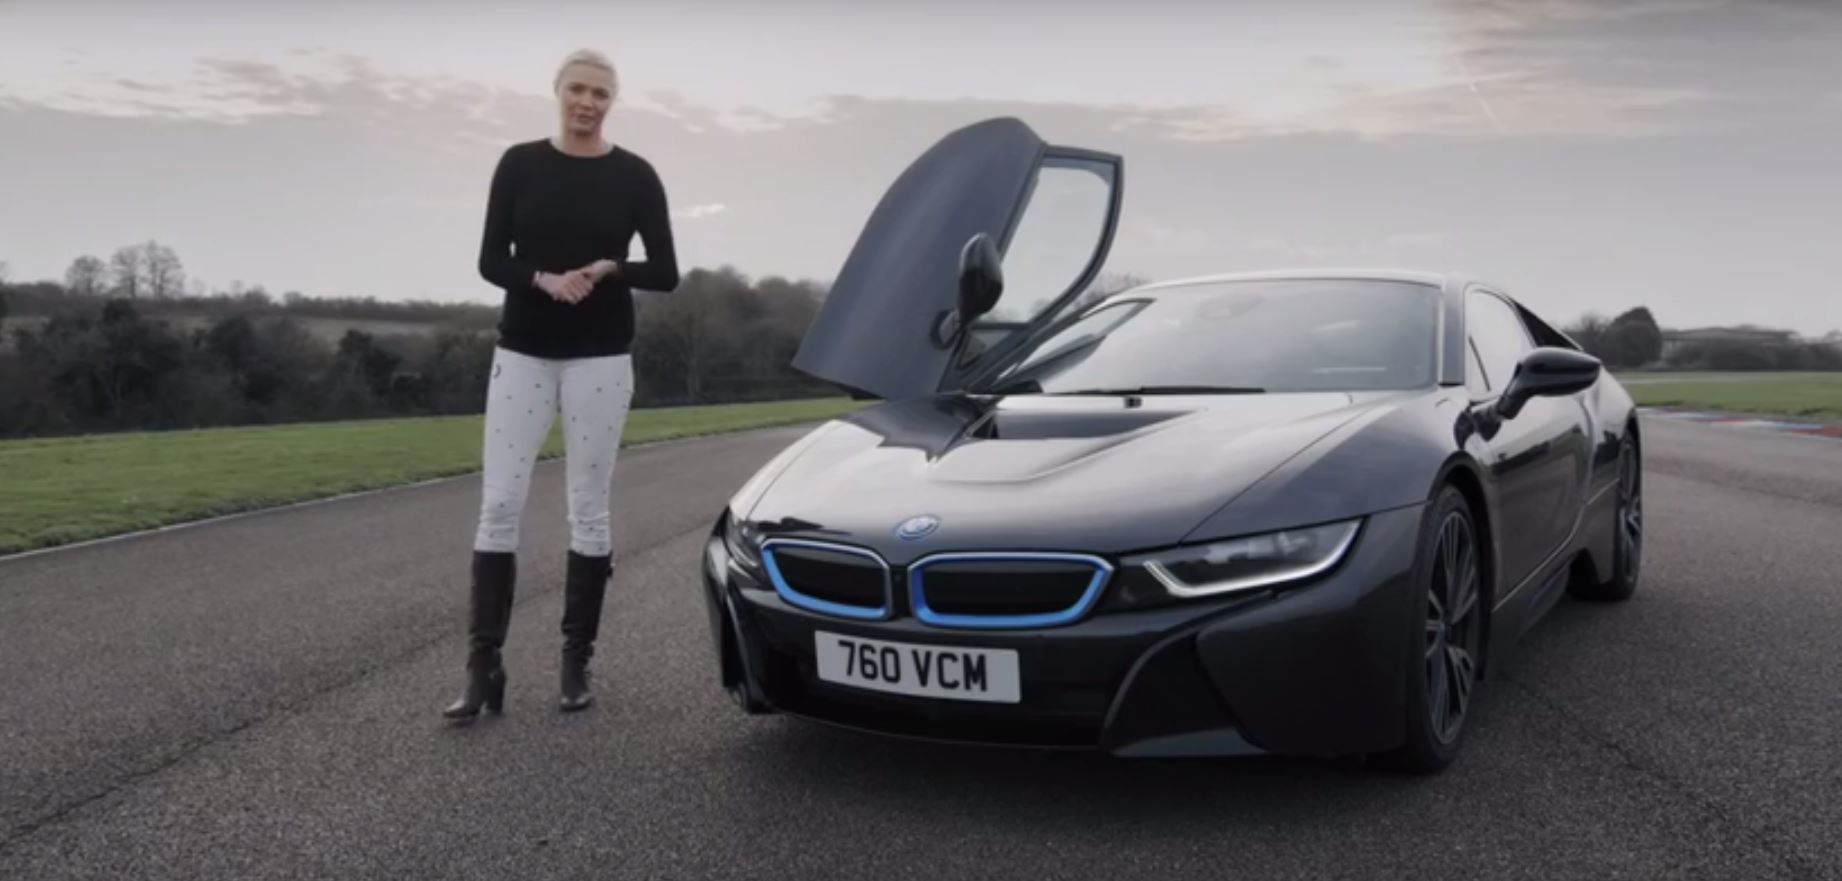 Jodie Kidd Does I3 And I8 Reviews Sponsored By Bmw Still Looks Hot